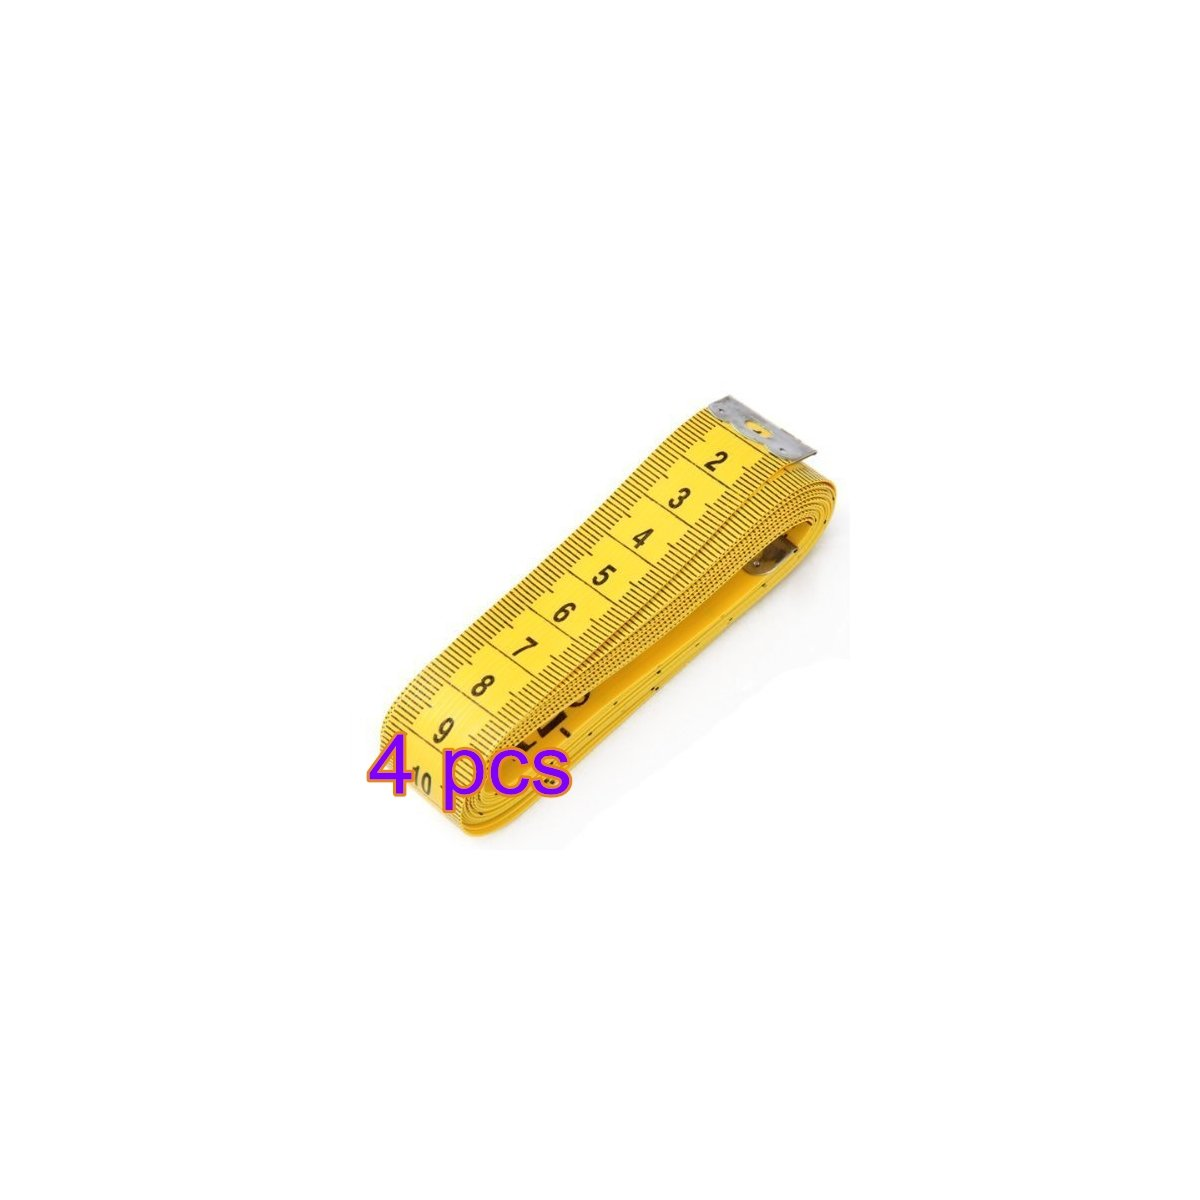 Tape Measure for Body Garment Tailor Sewing Portable Mini Keep-Fit Height Bust Waist Hips Measuring Tape Flexible Ruler - 1Pcs, Yellow Dylandy